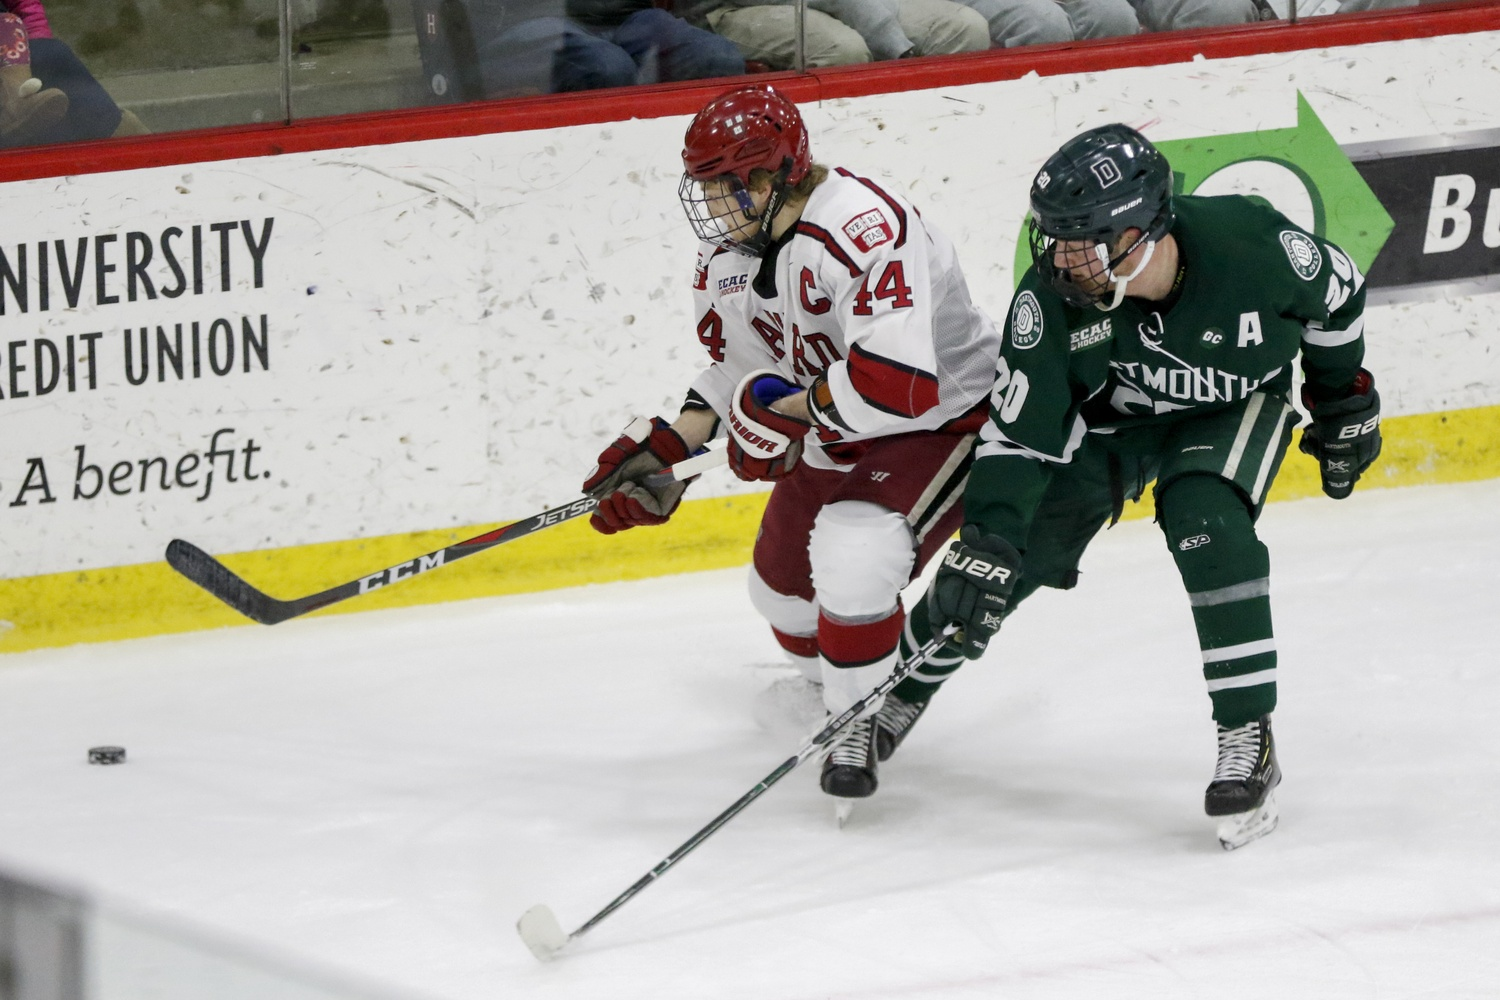 Co-captains Floodstrand and Zerter-Gossage provided the Crimson's crucial goals on Friday. The pair have scored in the same game three times so far this season.